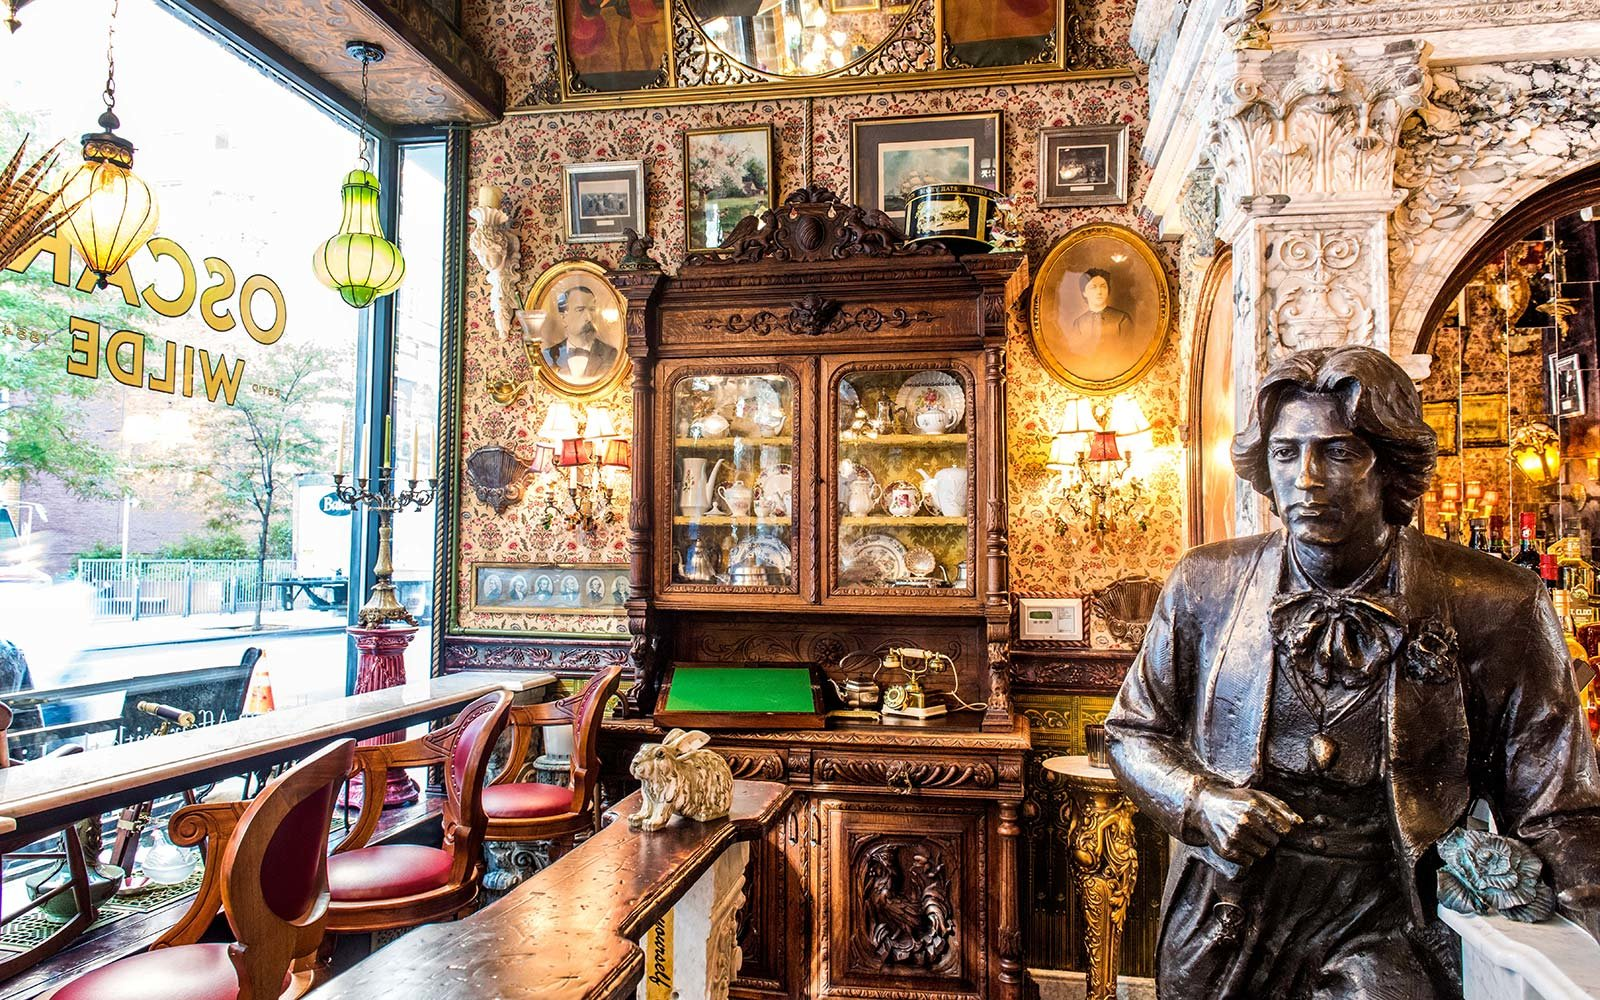 A New Oscar Wilde Themed Bar Just Opened In New York City